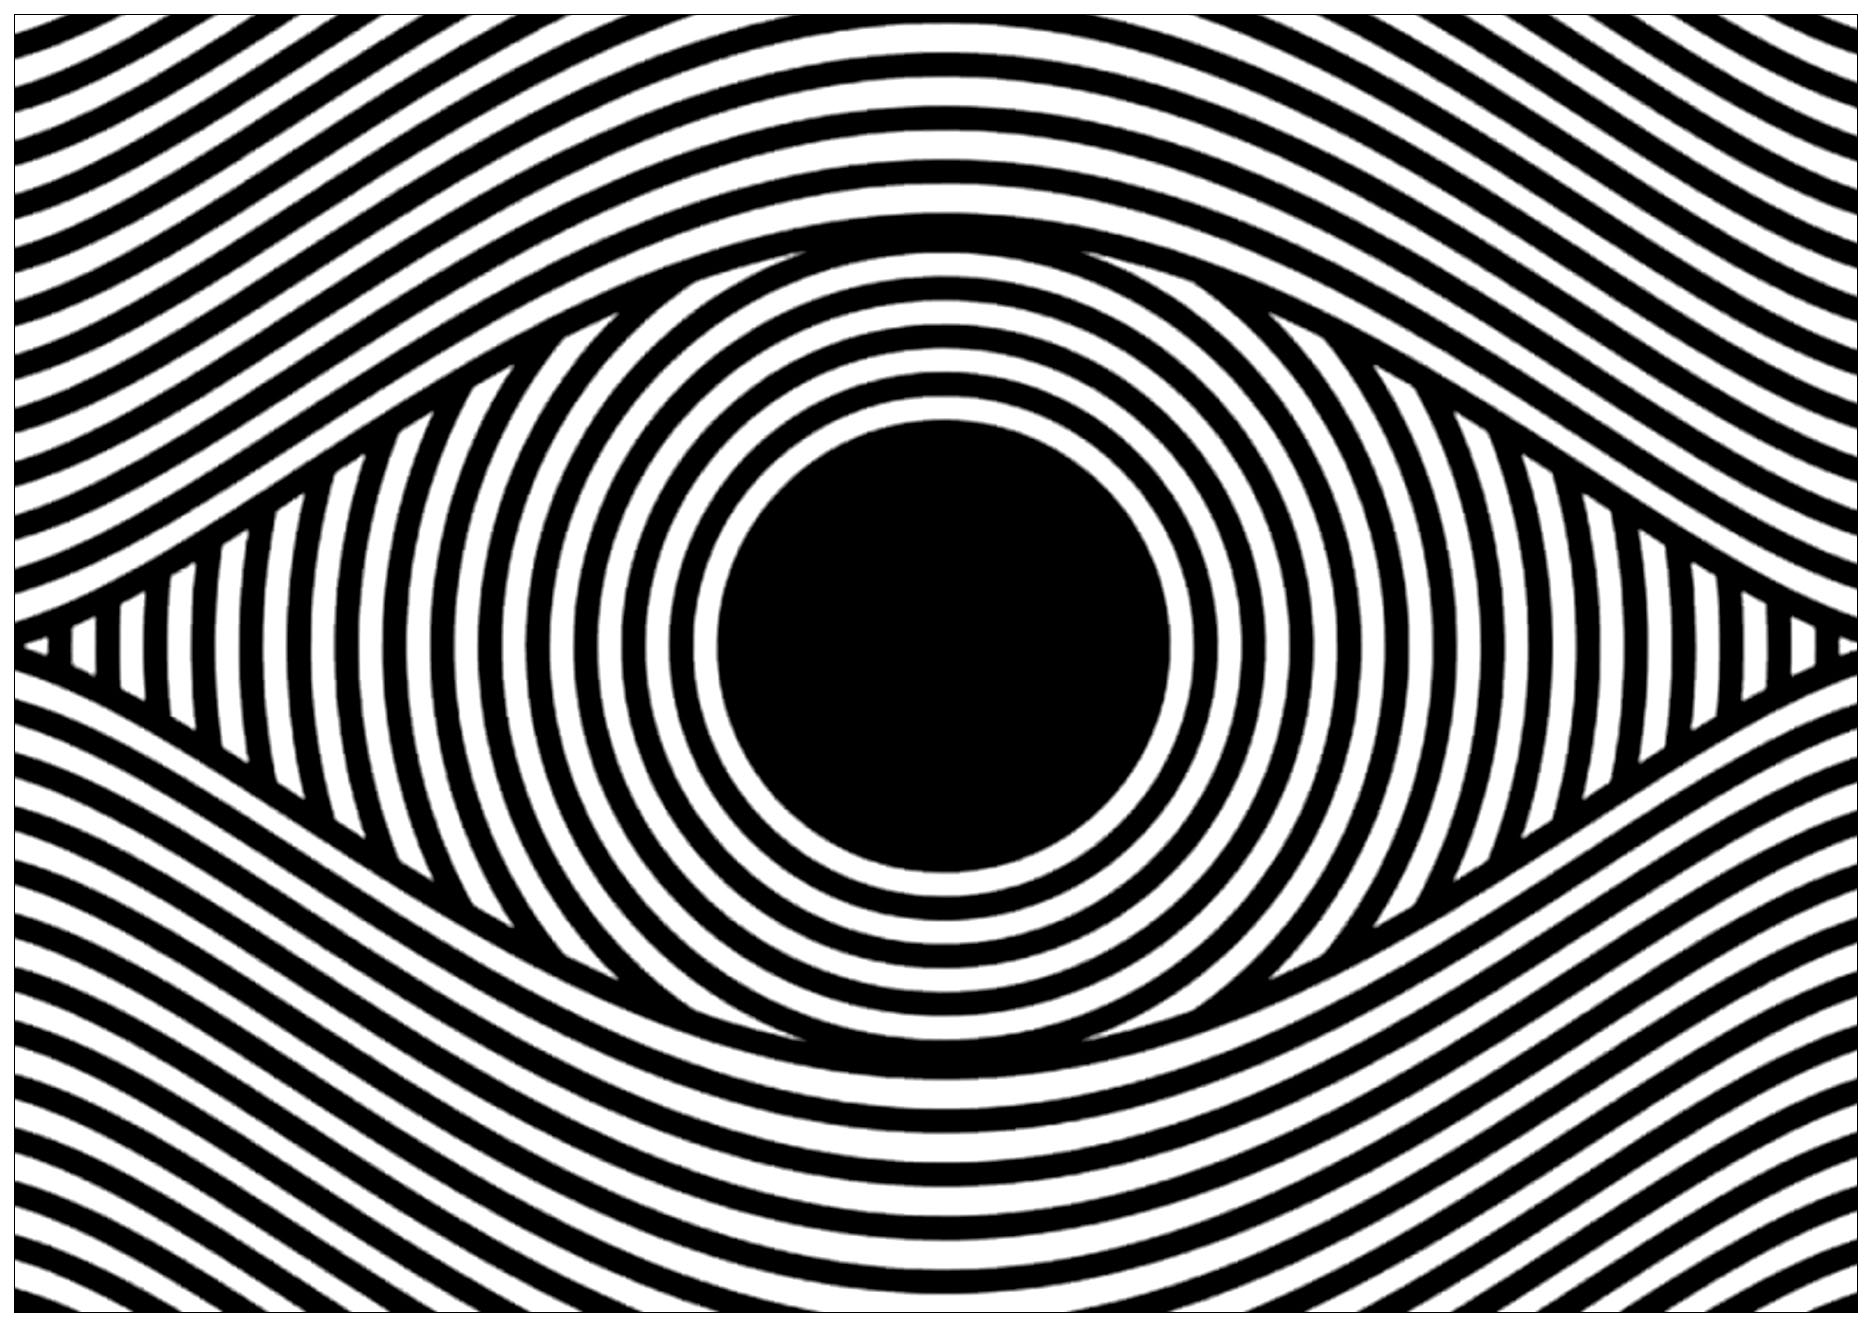 Op art eye landscape format - Optical Illusions (Op Art ...